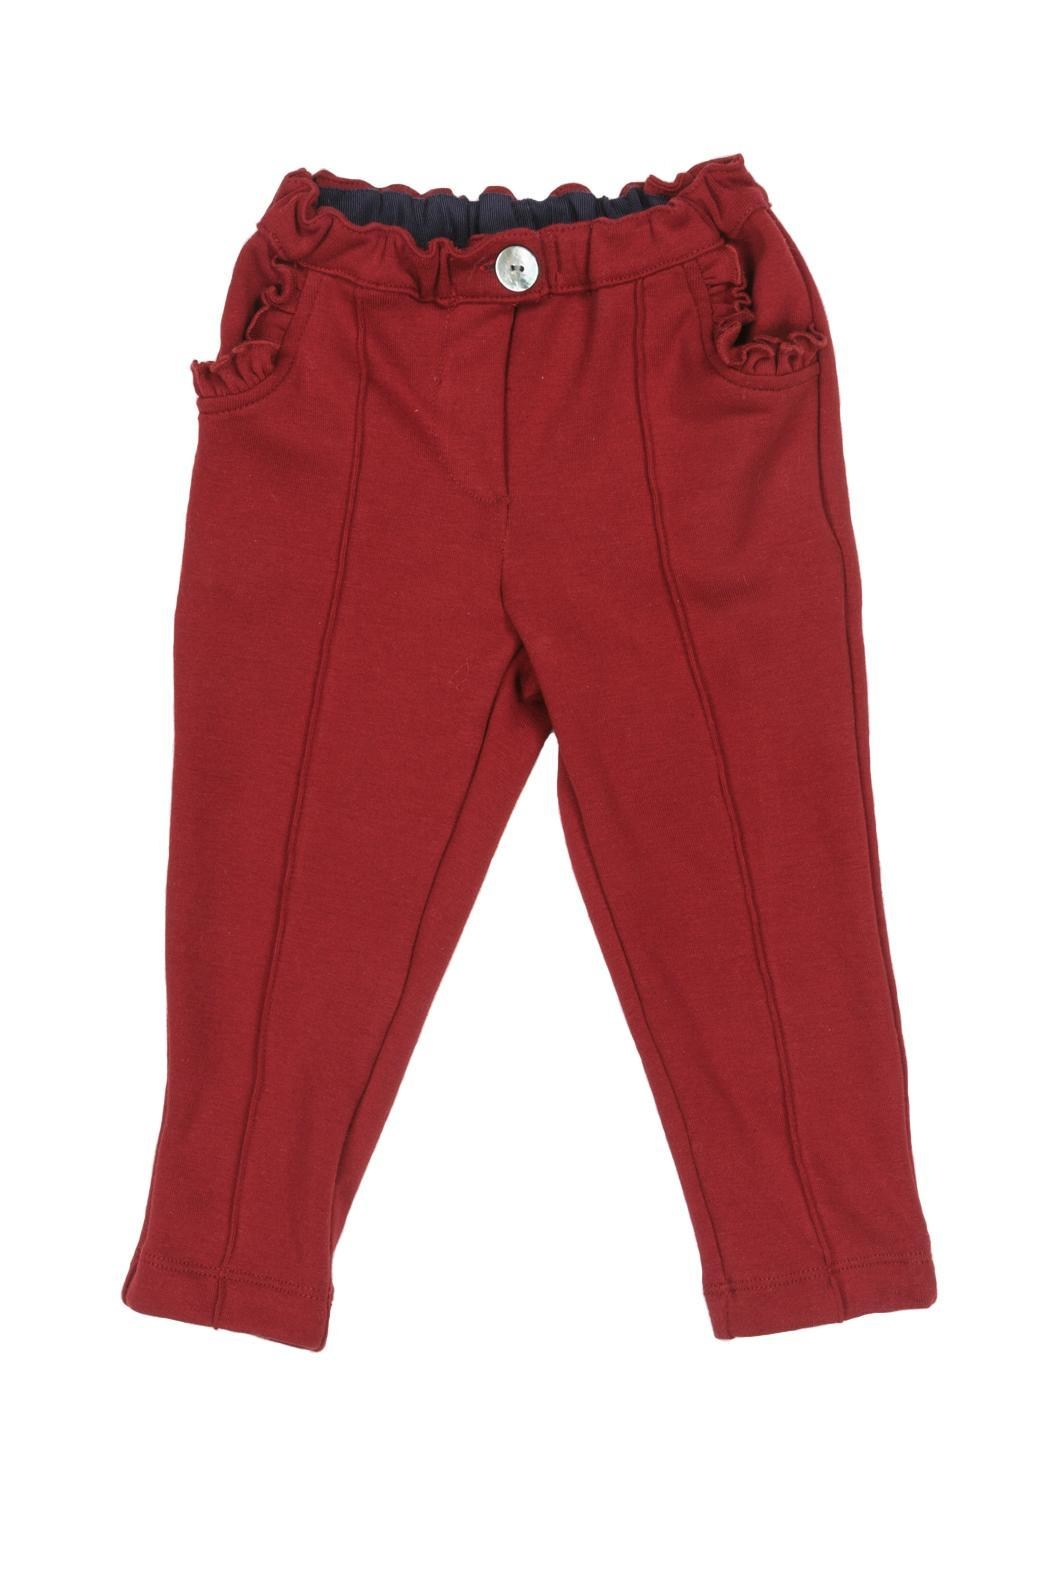 Malvi & Co. Burgundy Jersey Trousers. - Main Image